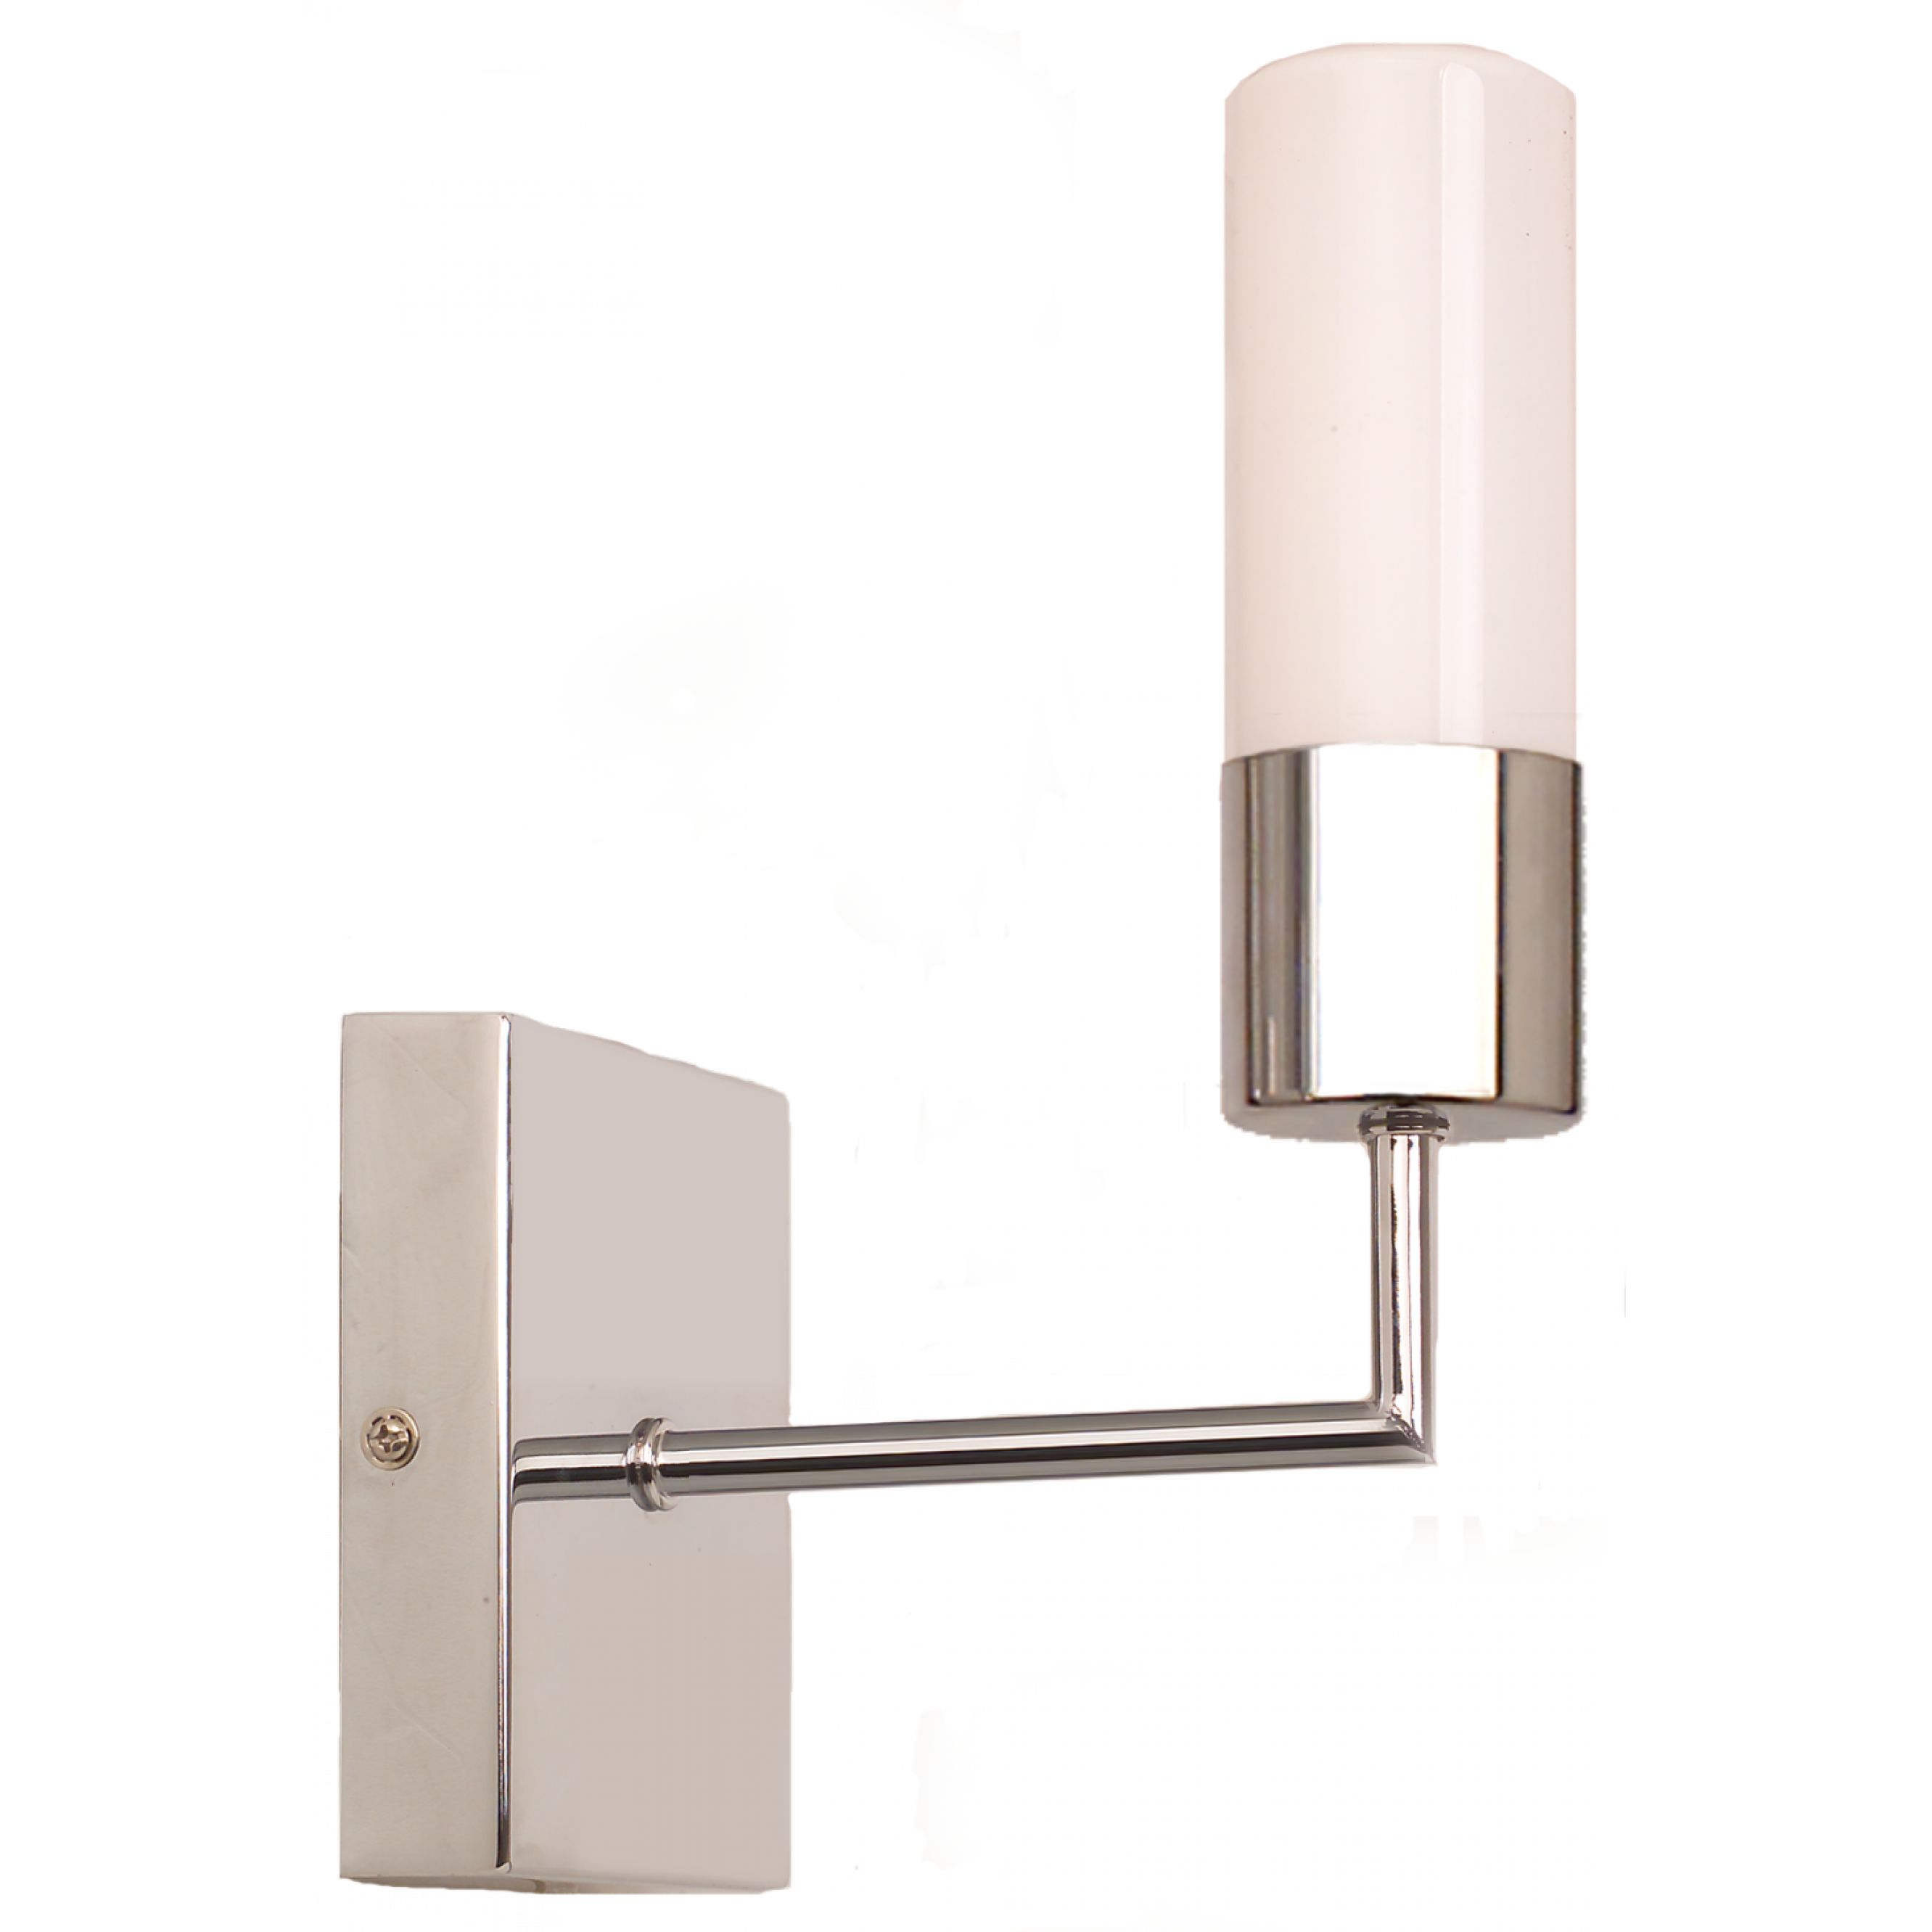 Whalley LED Double Wall Spot Light (stainless steel)